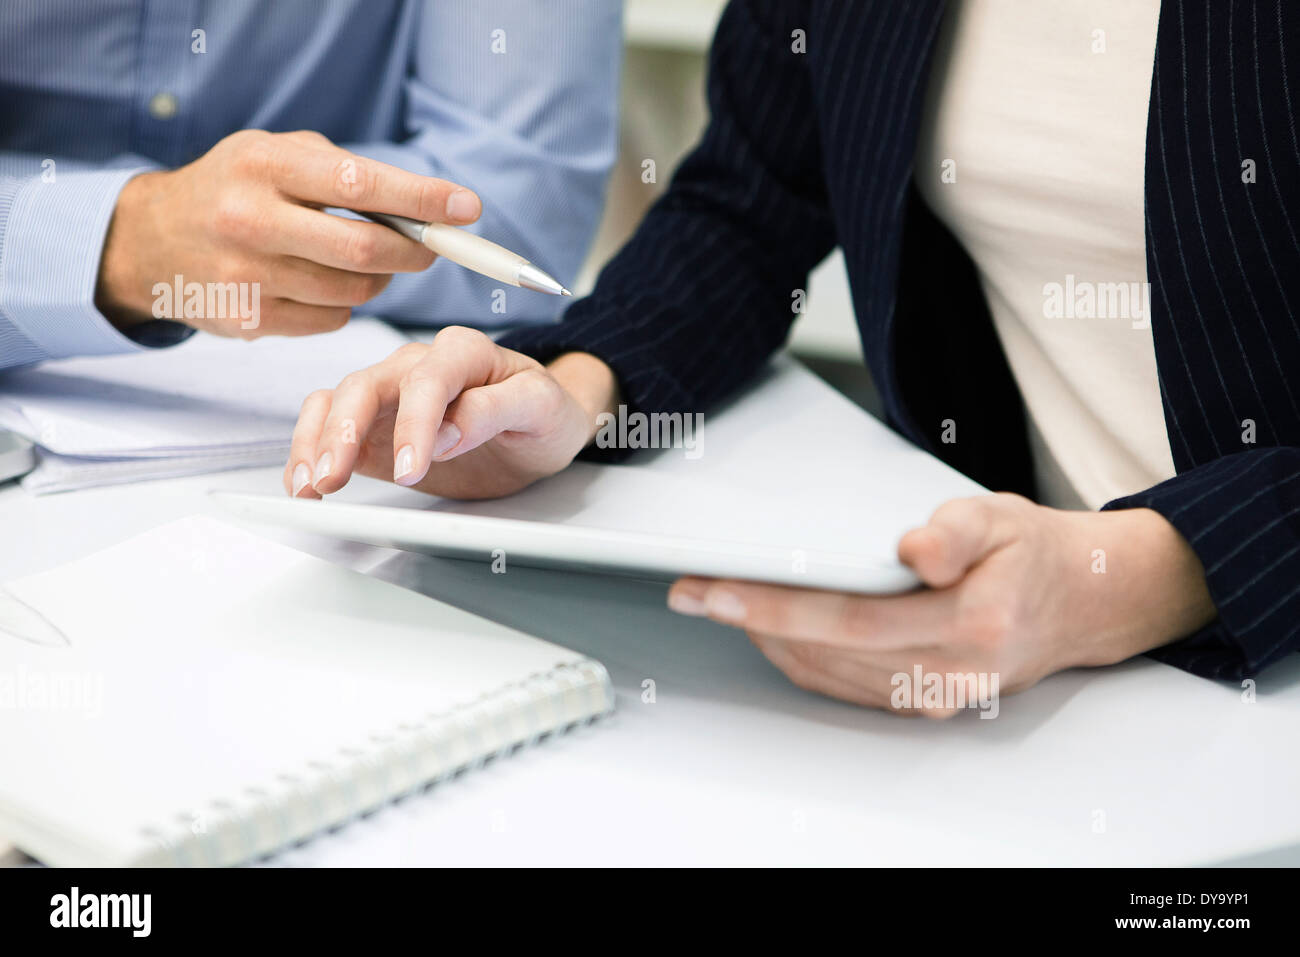 Colleagues using digital tablet, cropped - Stock Image